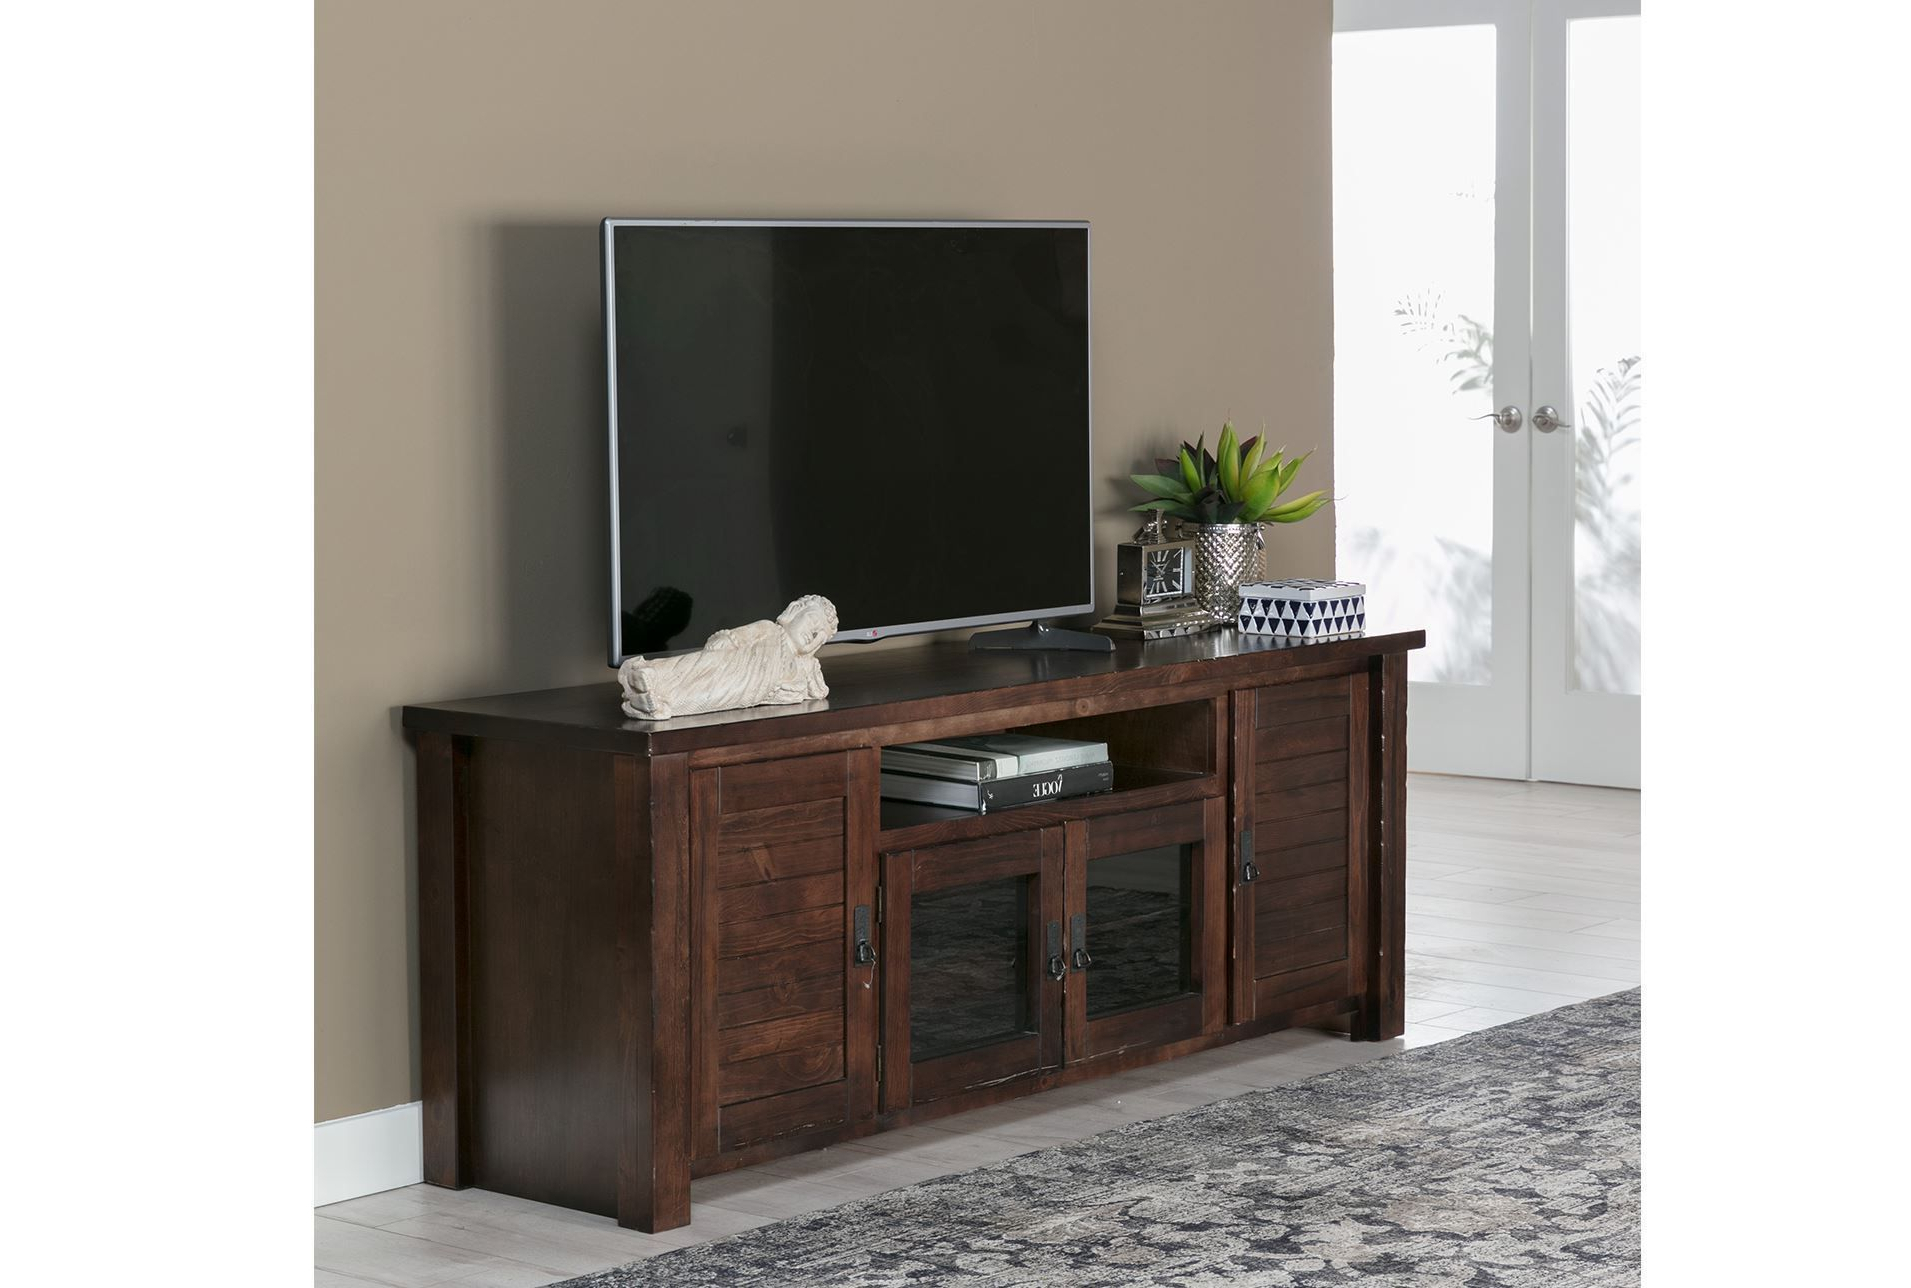 Canyon 74 Inch Tv Stand | For The Home | Pinterest | Home Living Intended For Canyon 74 Inch Tv Stands (Gallery 3 of 20)